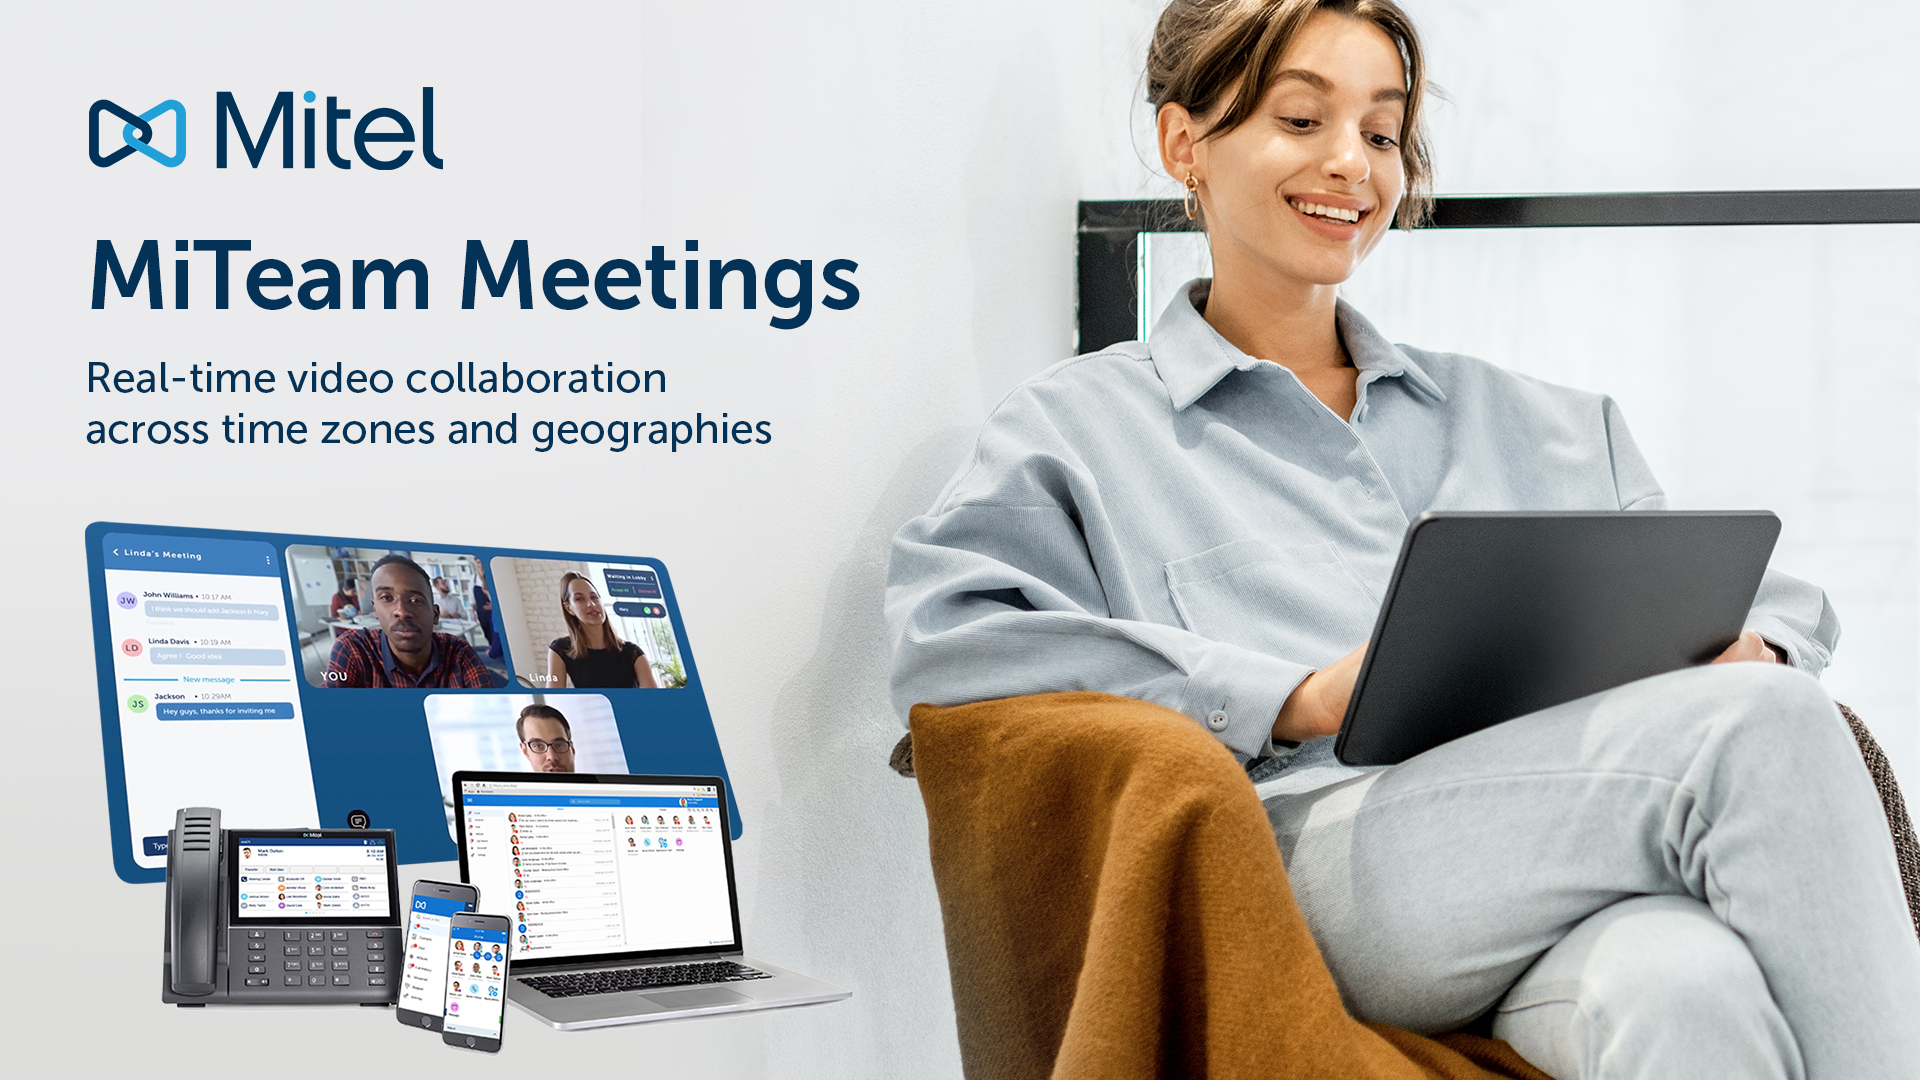 Mitel MiTeam Meetings